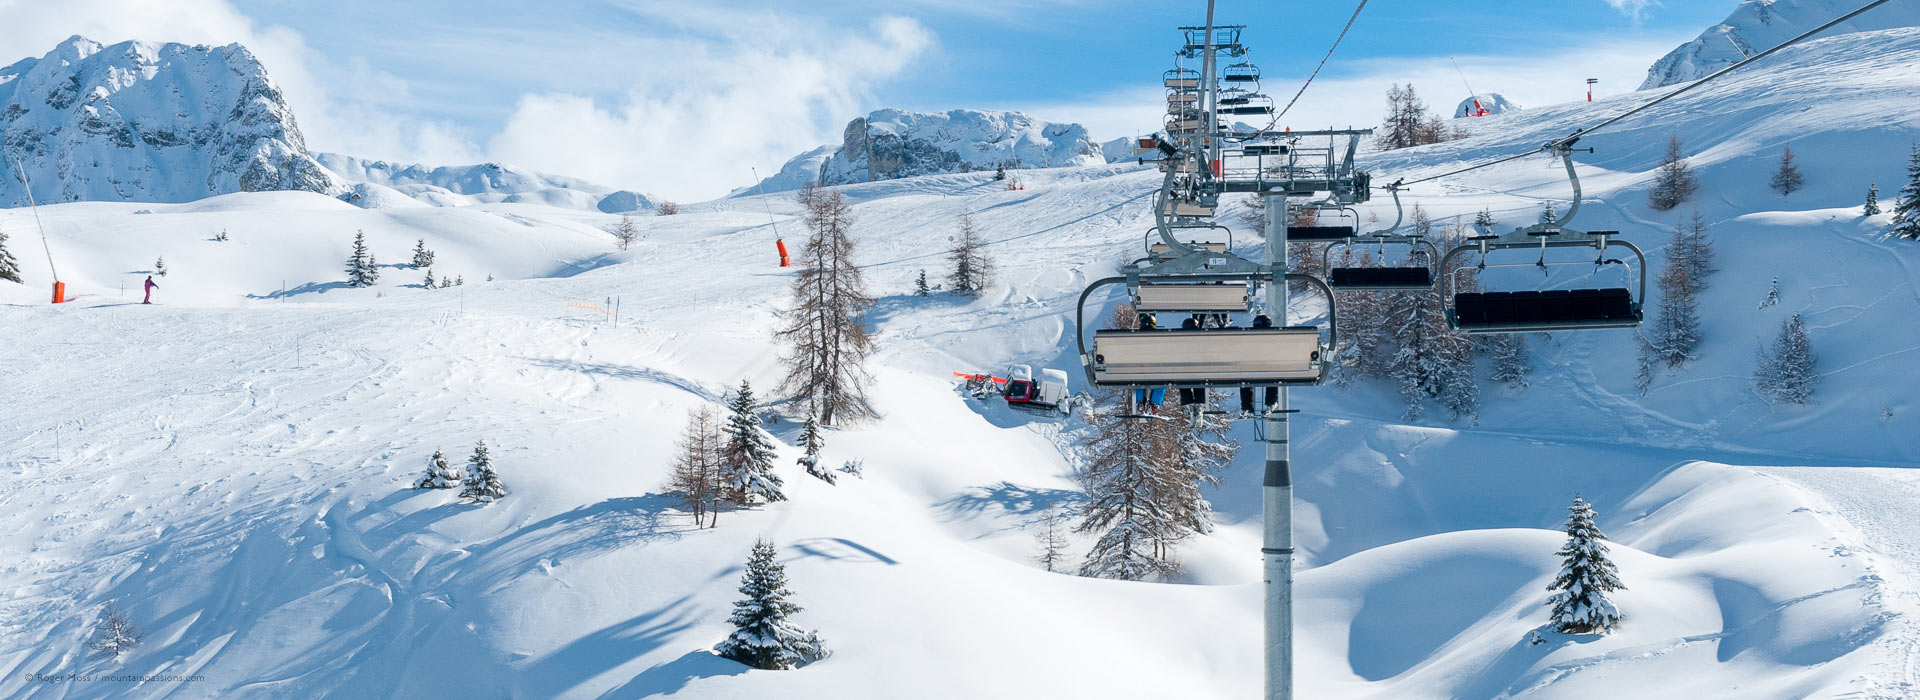 Wide overview from chairlift of pistes after fresh snow